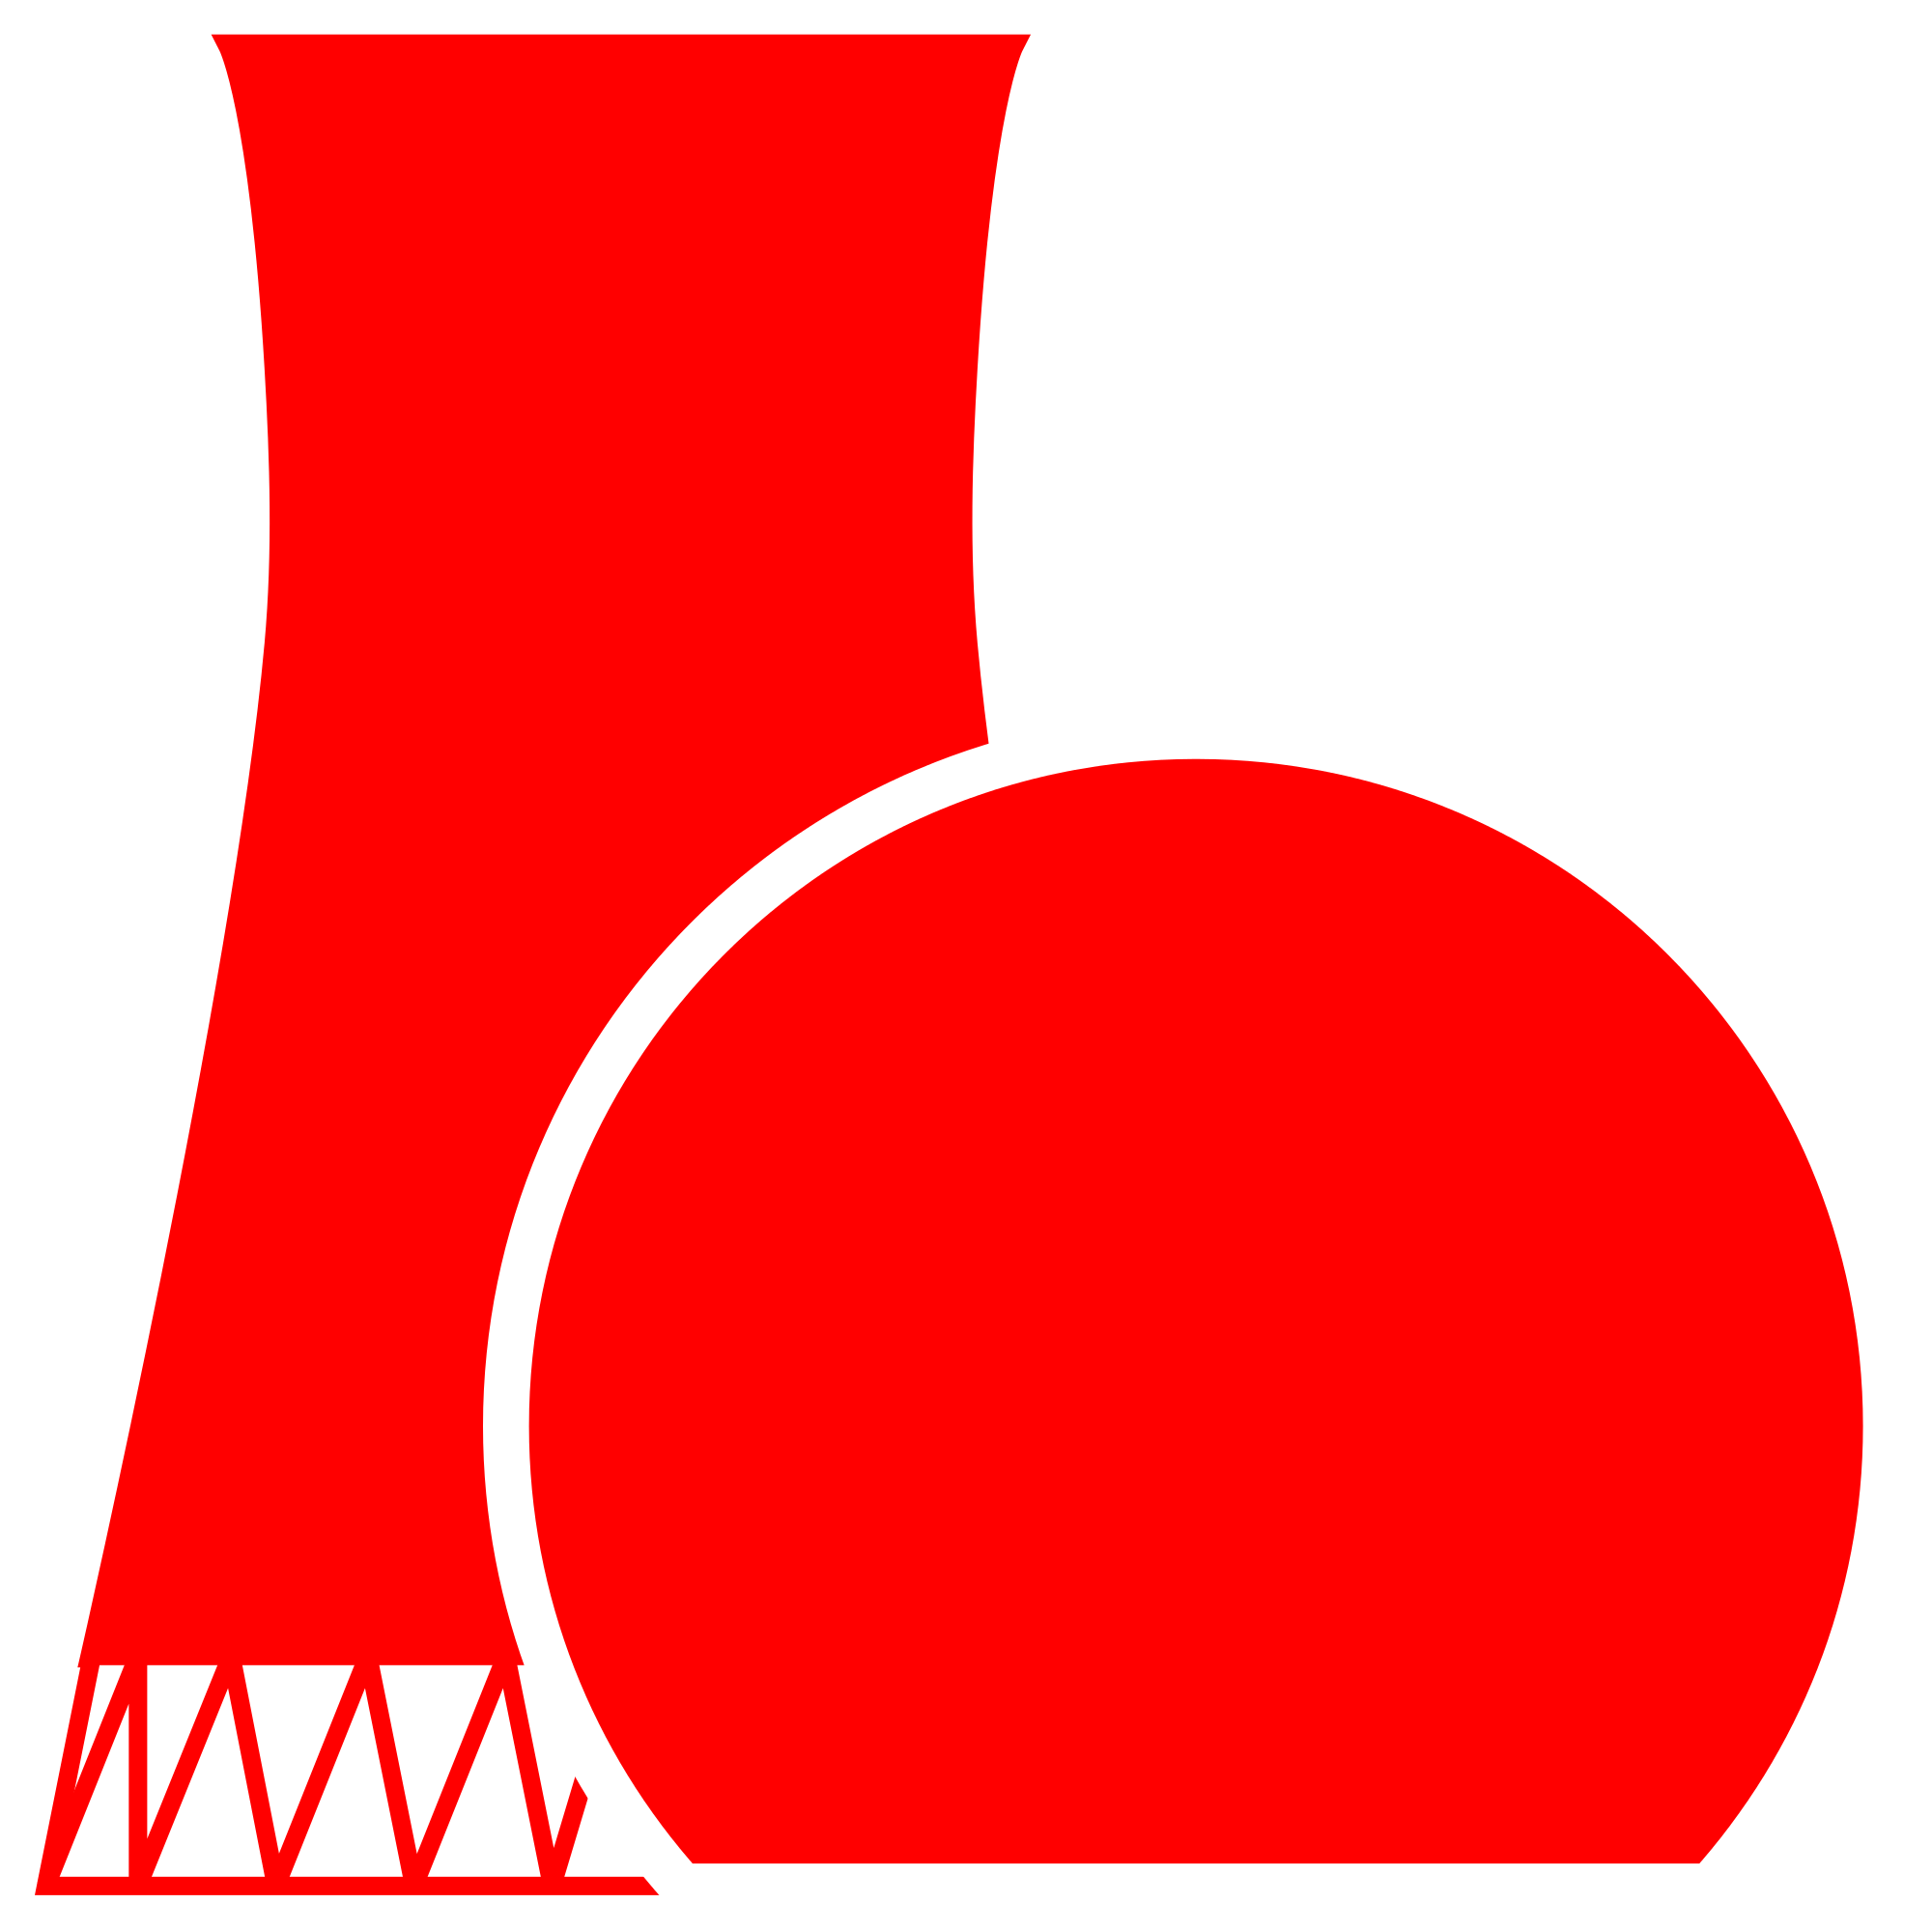 Nuke clipart nuclear power. File plant icon red